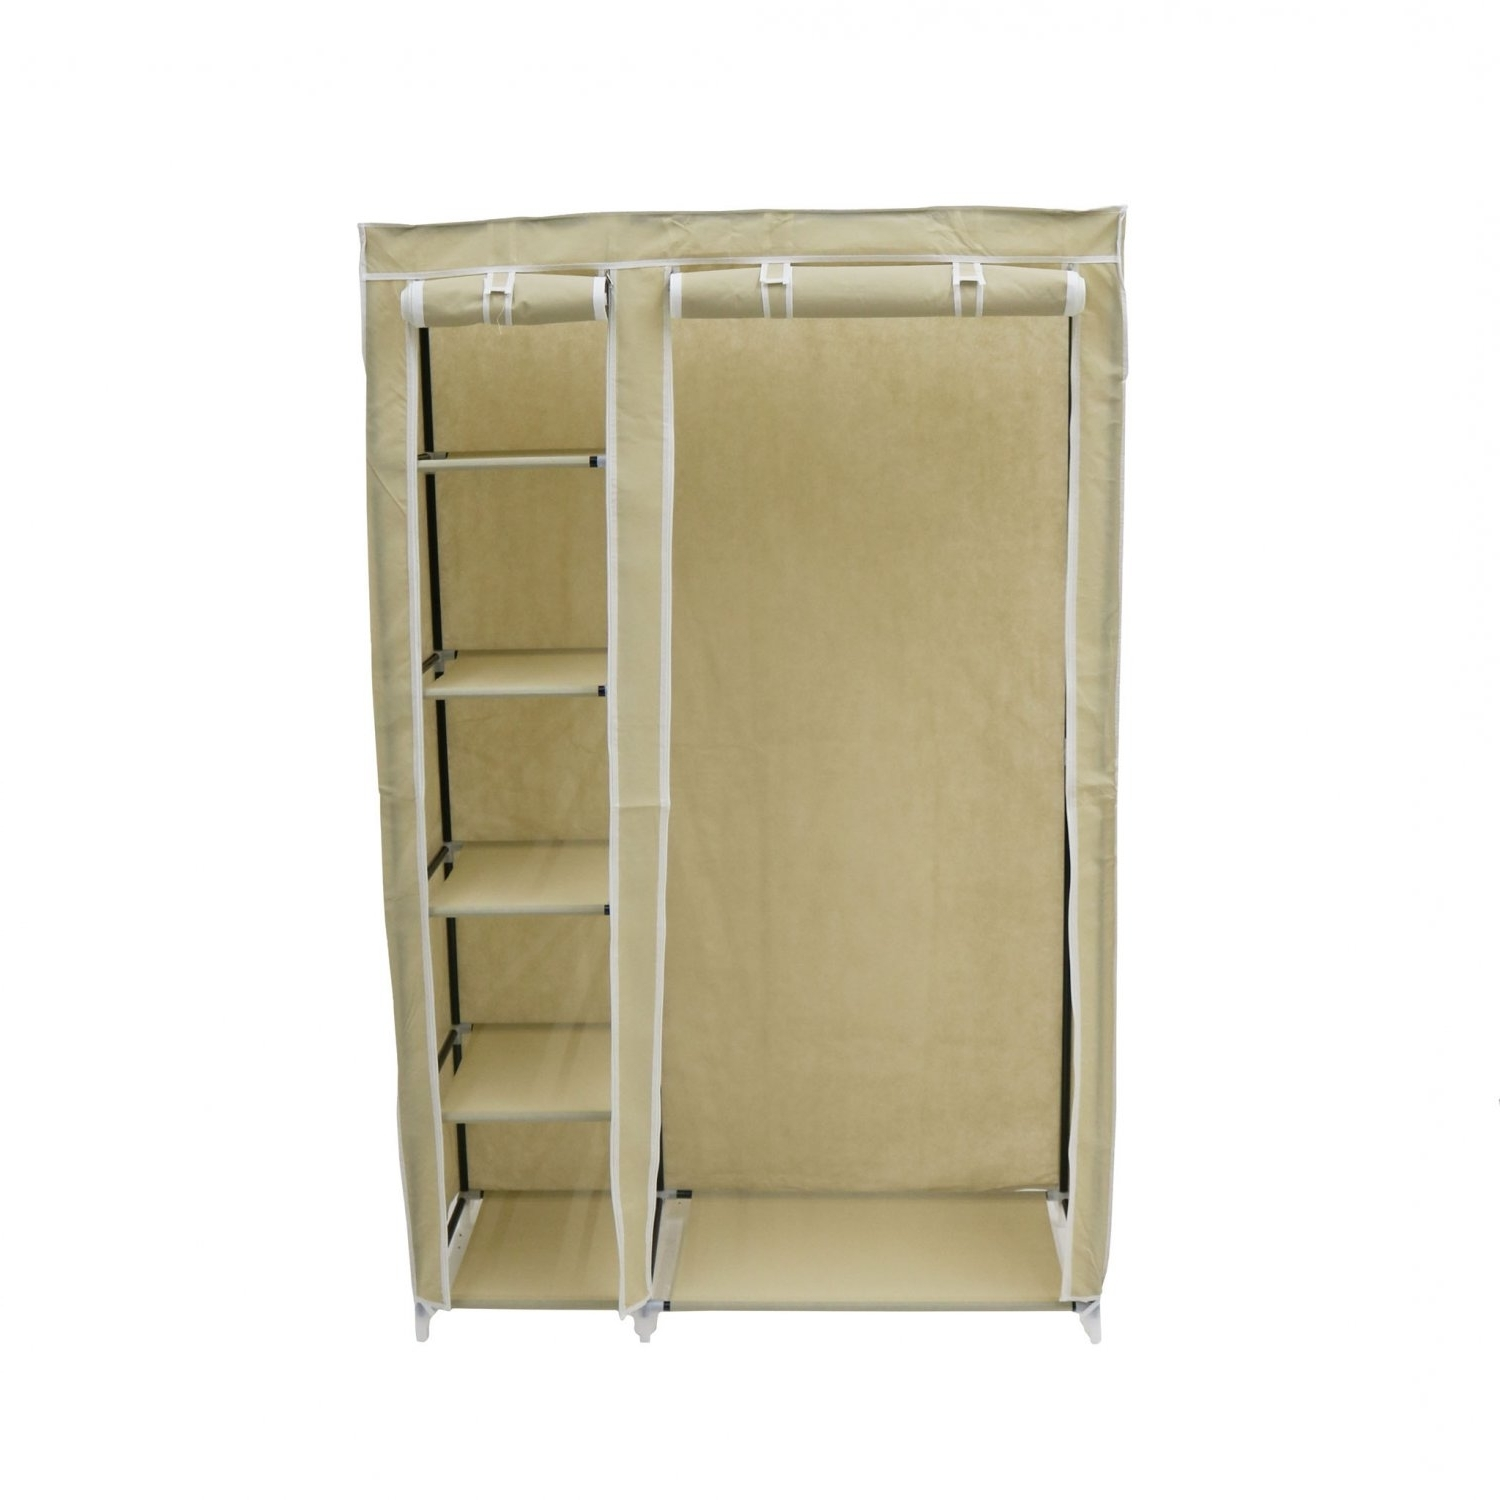 Double Cream Canvas Wardrobe Clothes Rail Hanging Storage Closet Within Best And Newest Double Rail Wardrobe (View 7 of 15)